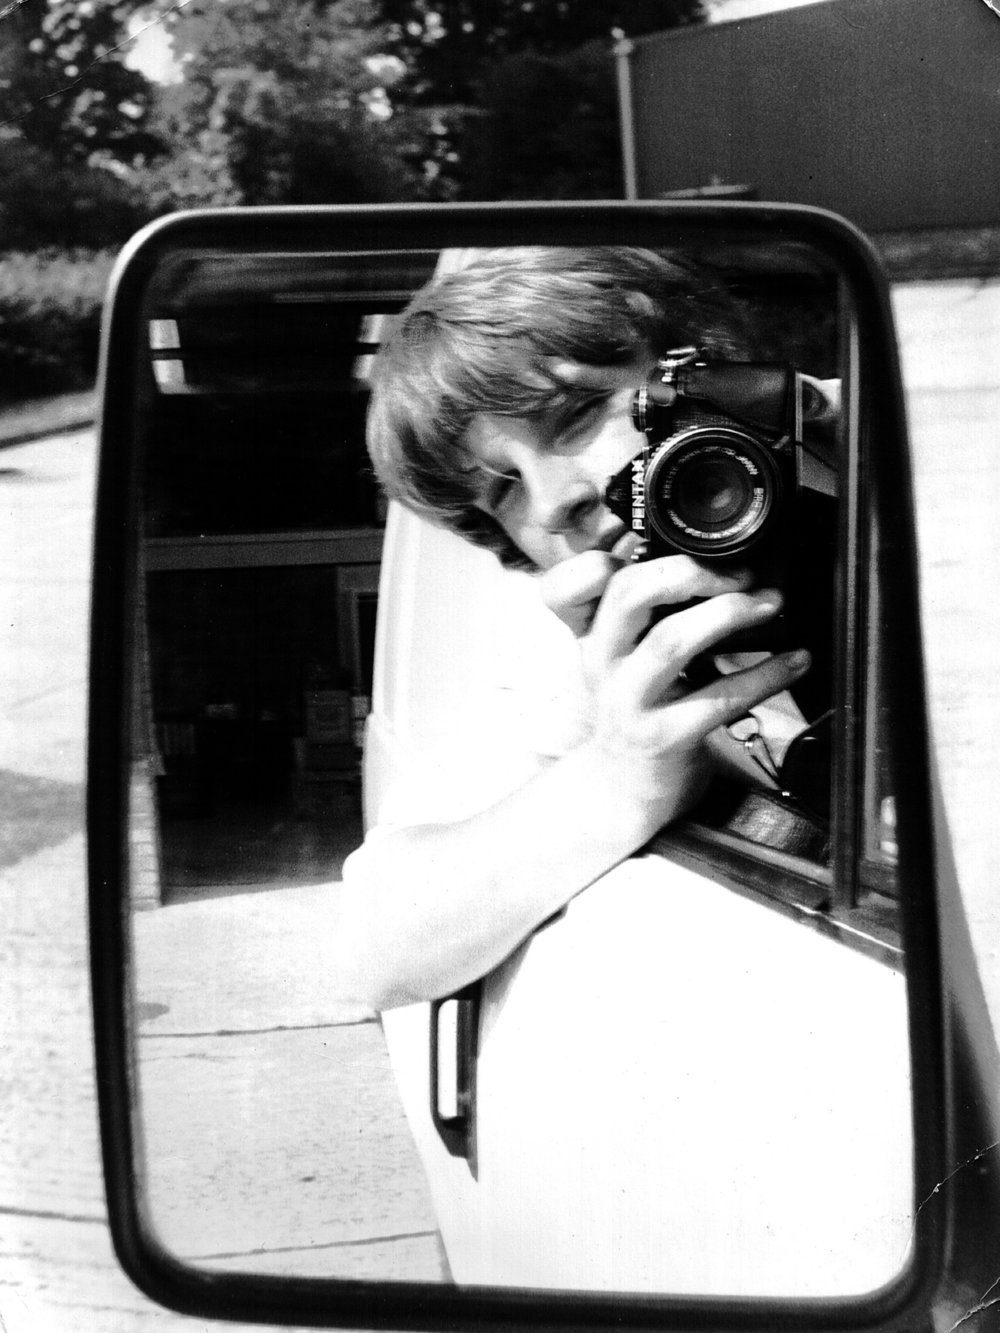 Here's me with my first proper camera - a Pentax ME Super 35mm, already a camera nerd at 14.